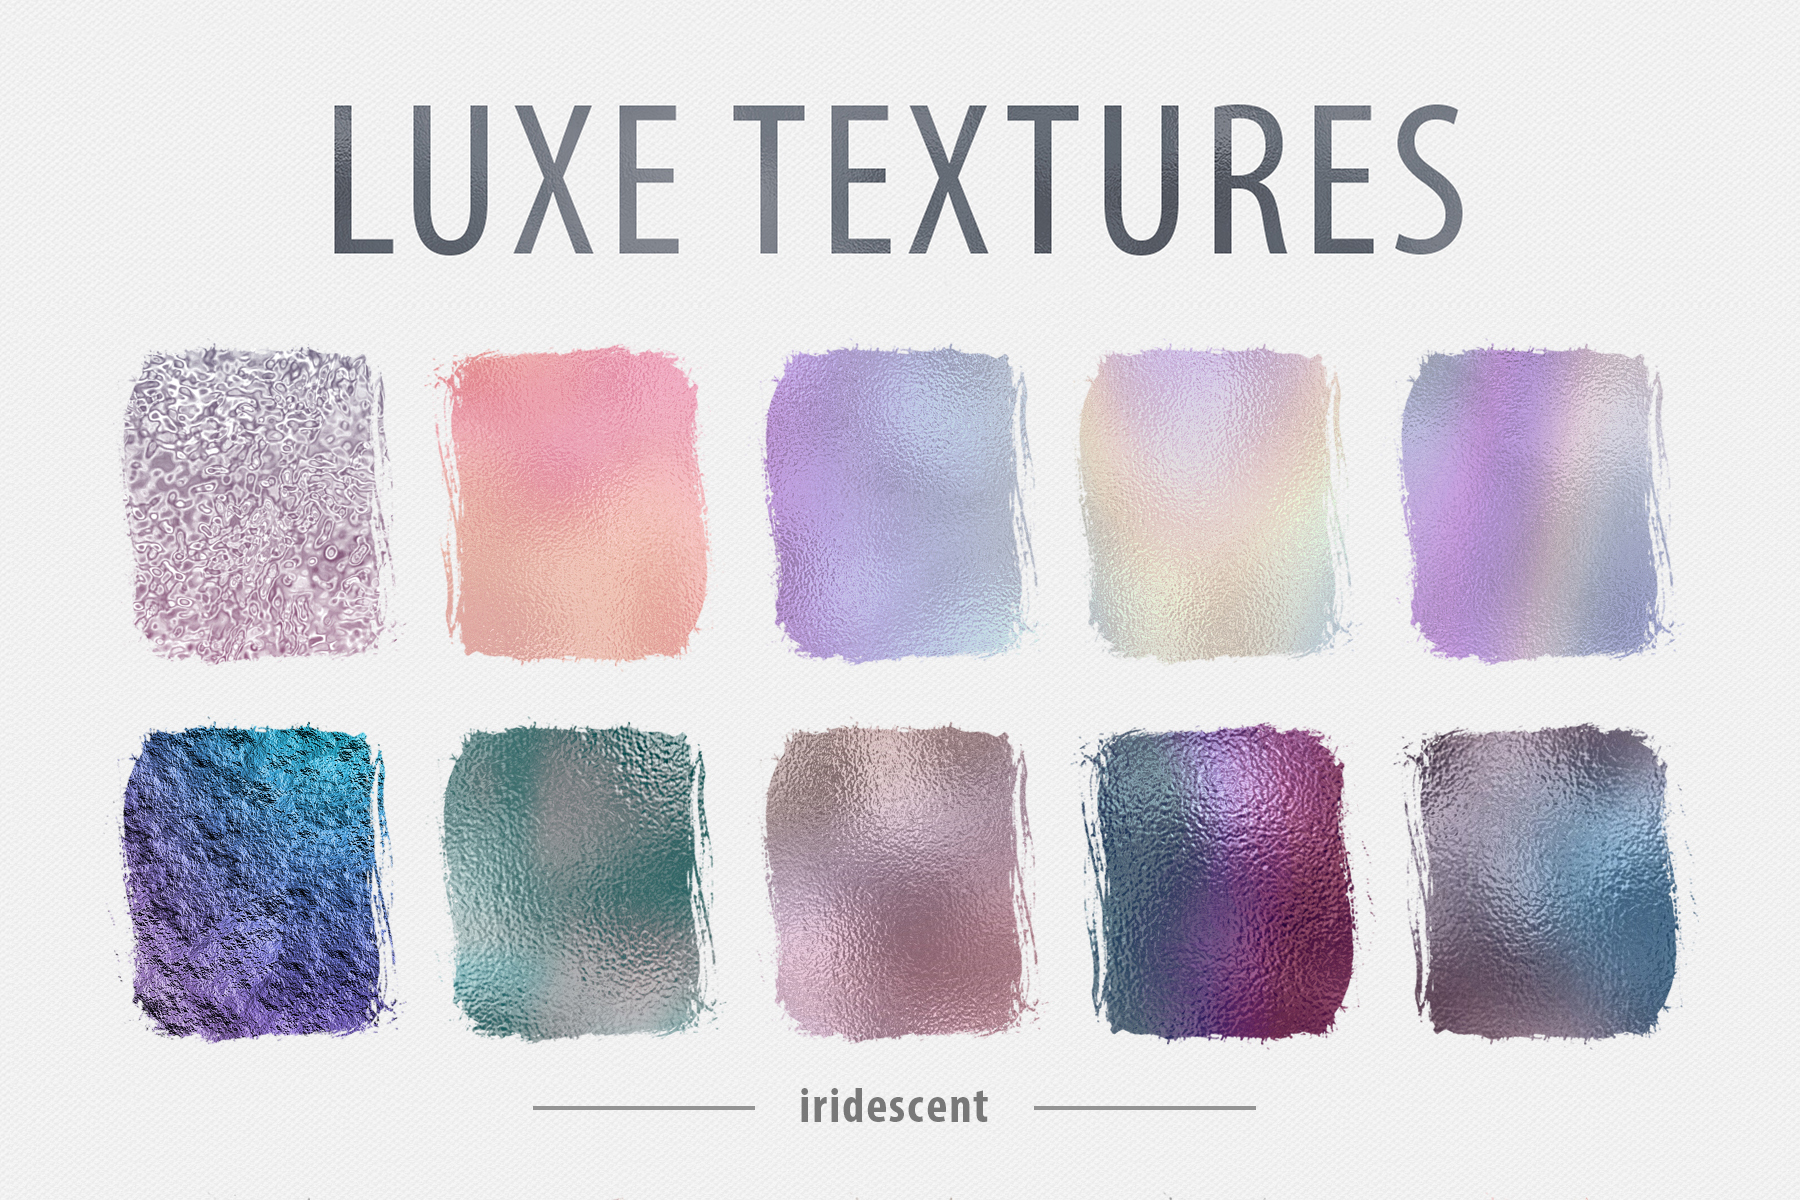 Luxe - 200 Textures and Patterns - Foil, Glitter, Marble example image 15